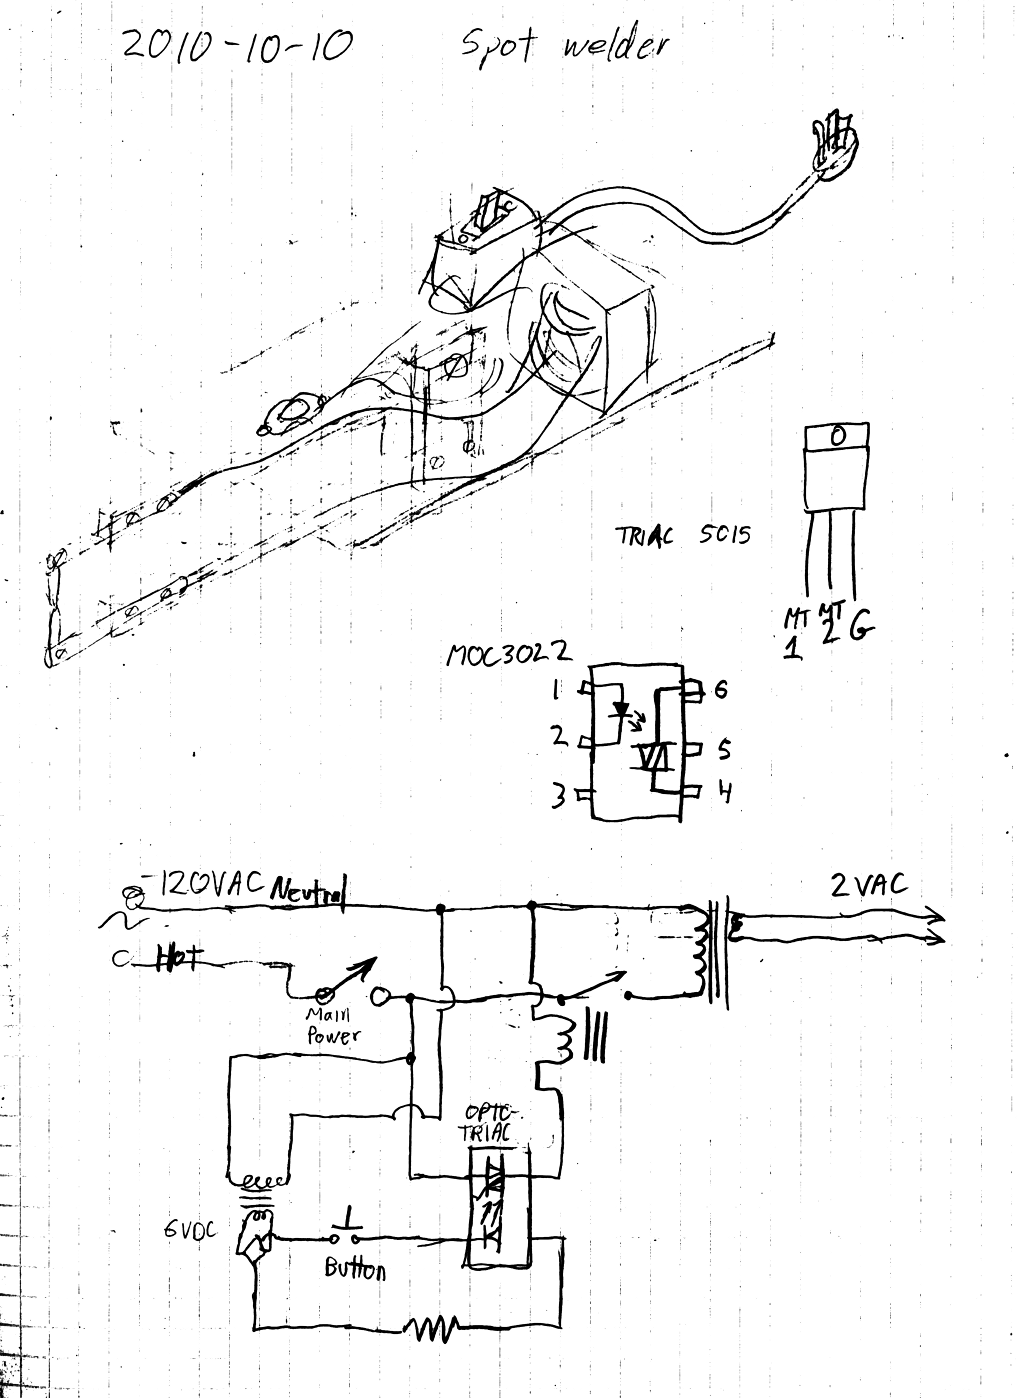 Lincoln Ac225s Arc Welder Wiring Diagram For Spot